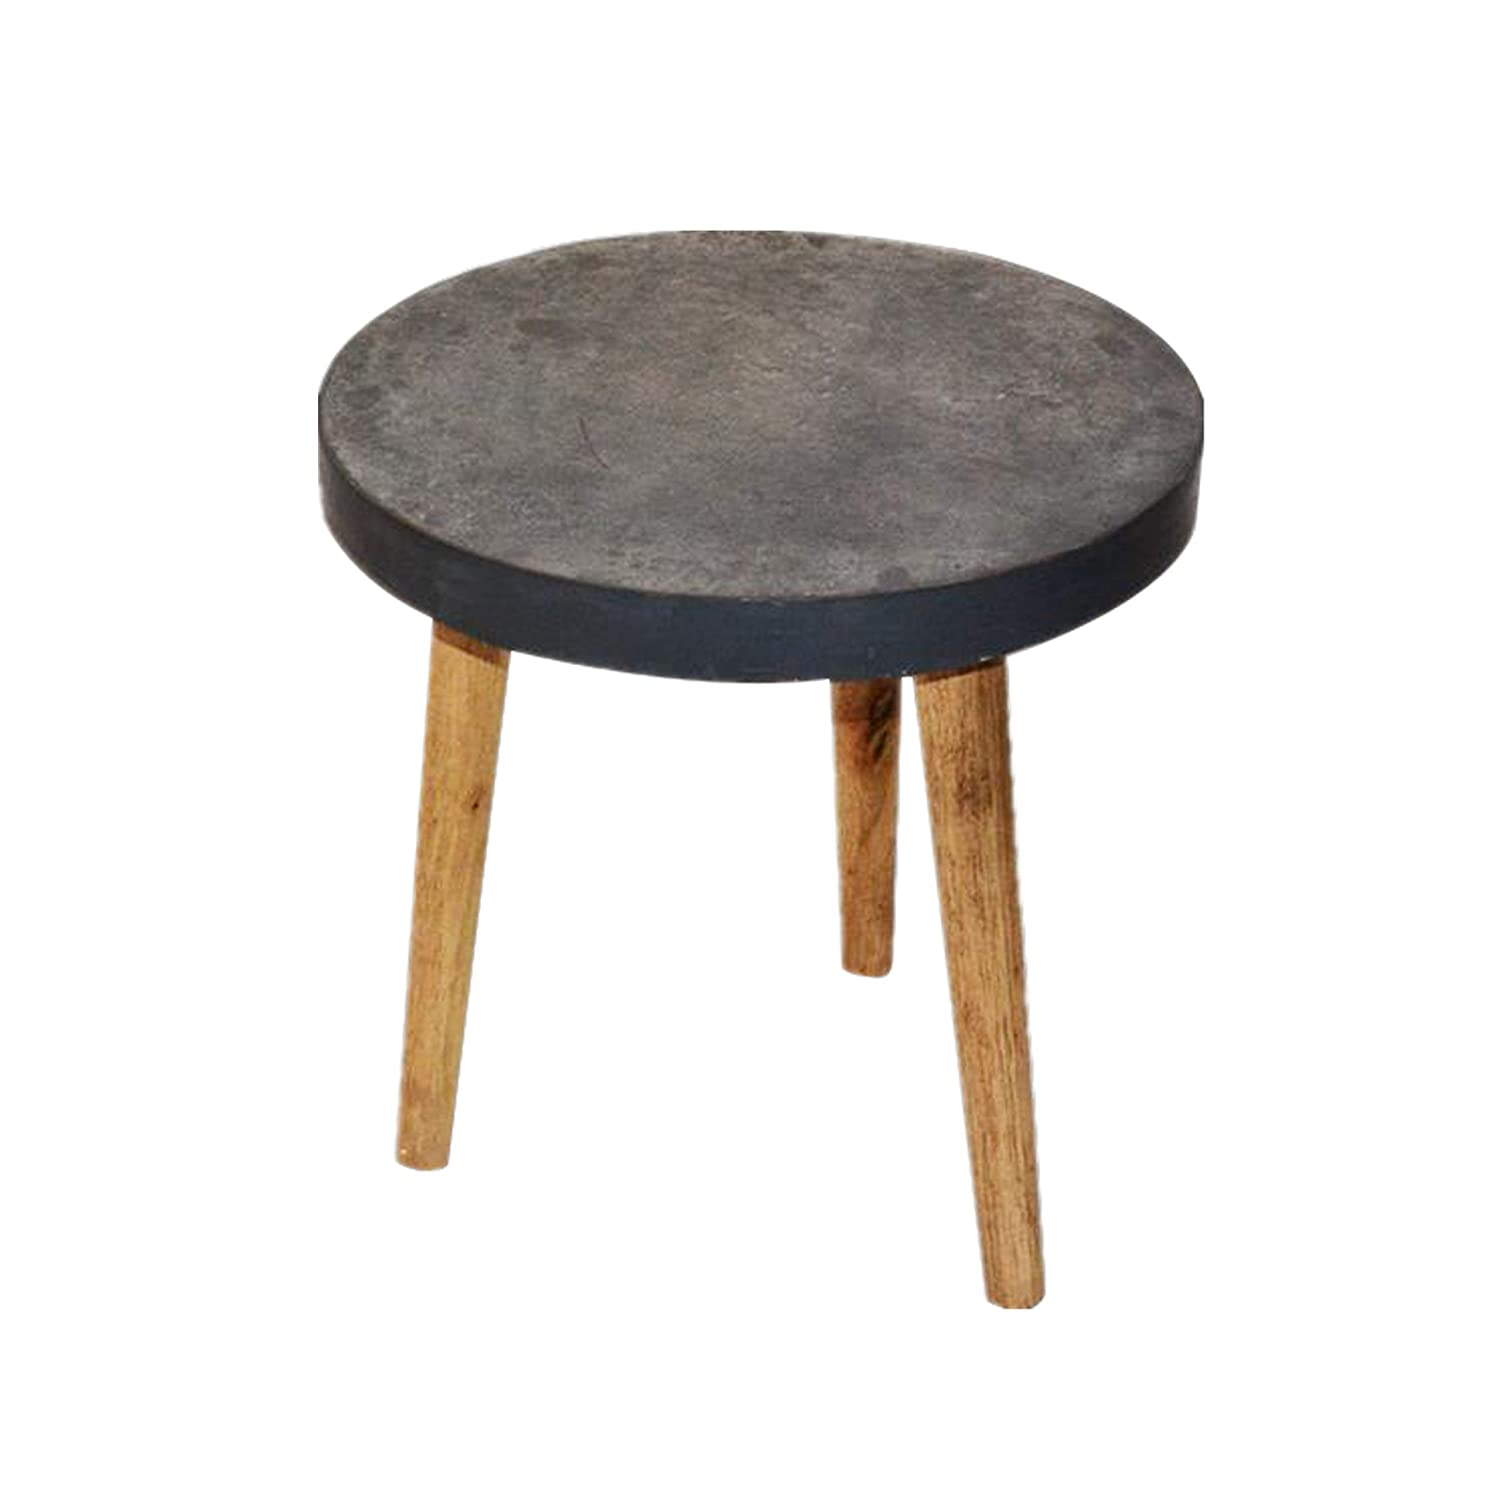 Small tables for office Shaped Amazoncom Paris Loft 158 Occasional Round Small Industril Wood End Table Cement Finish Top Home Office Coffee Tables Legs Kitchen Dining Amazoncom Amazoncom Paris Loft 158 Occasional Round Small Industril